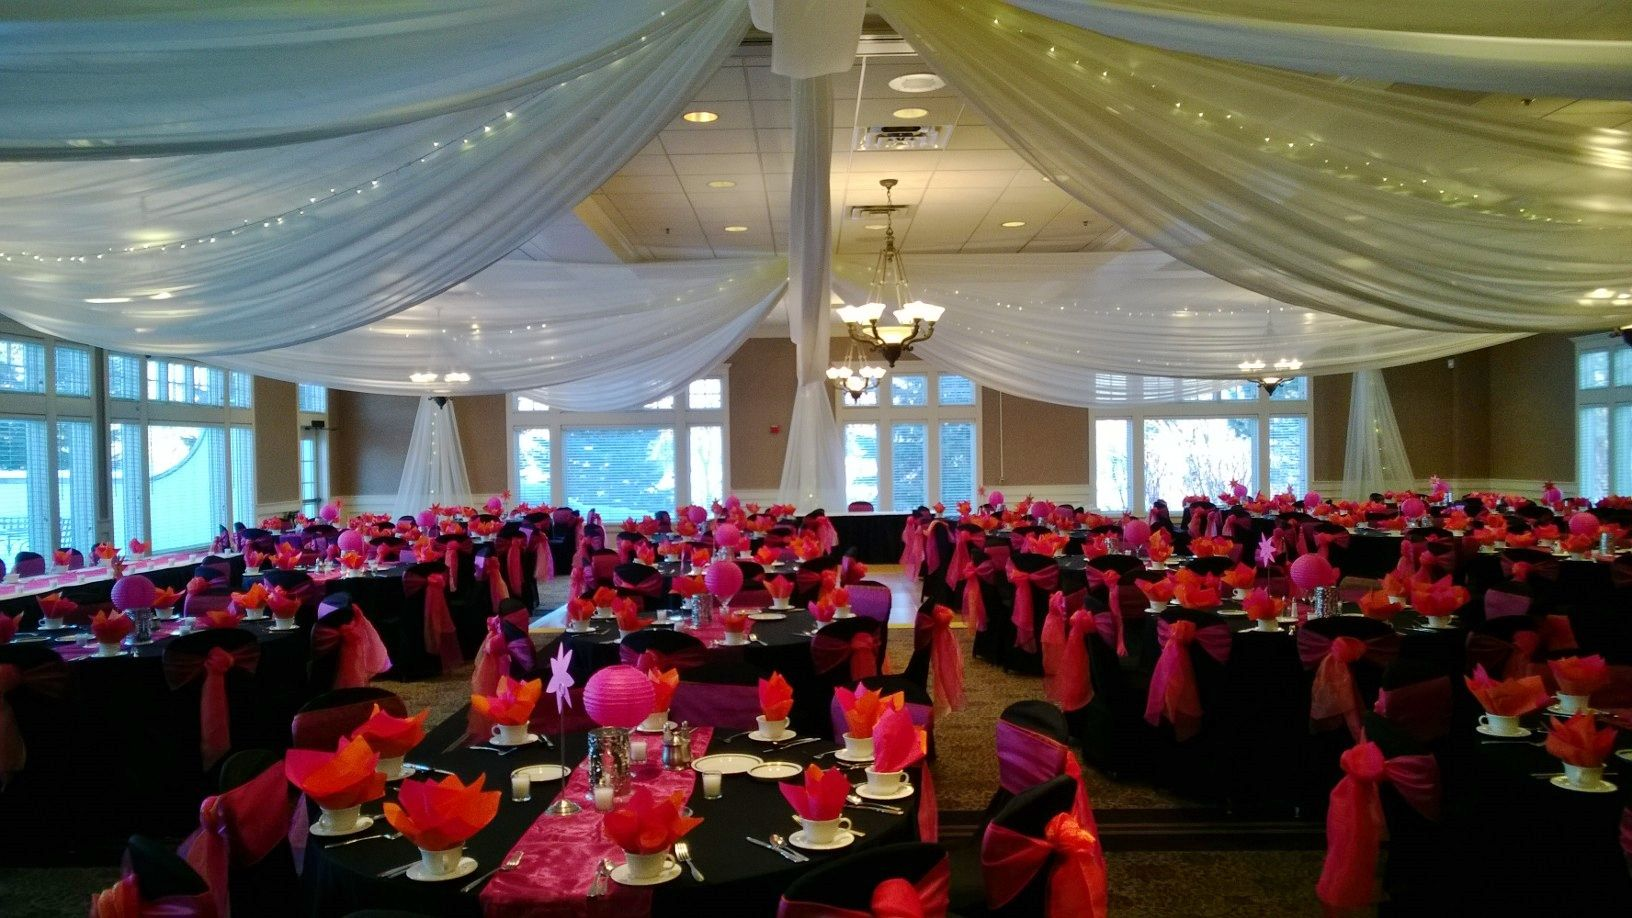 Black Table Linens With Hot Pink Organza Runners, Black Chair Covers With Hot  Pink U0026